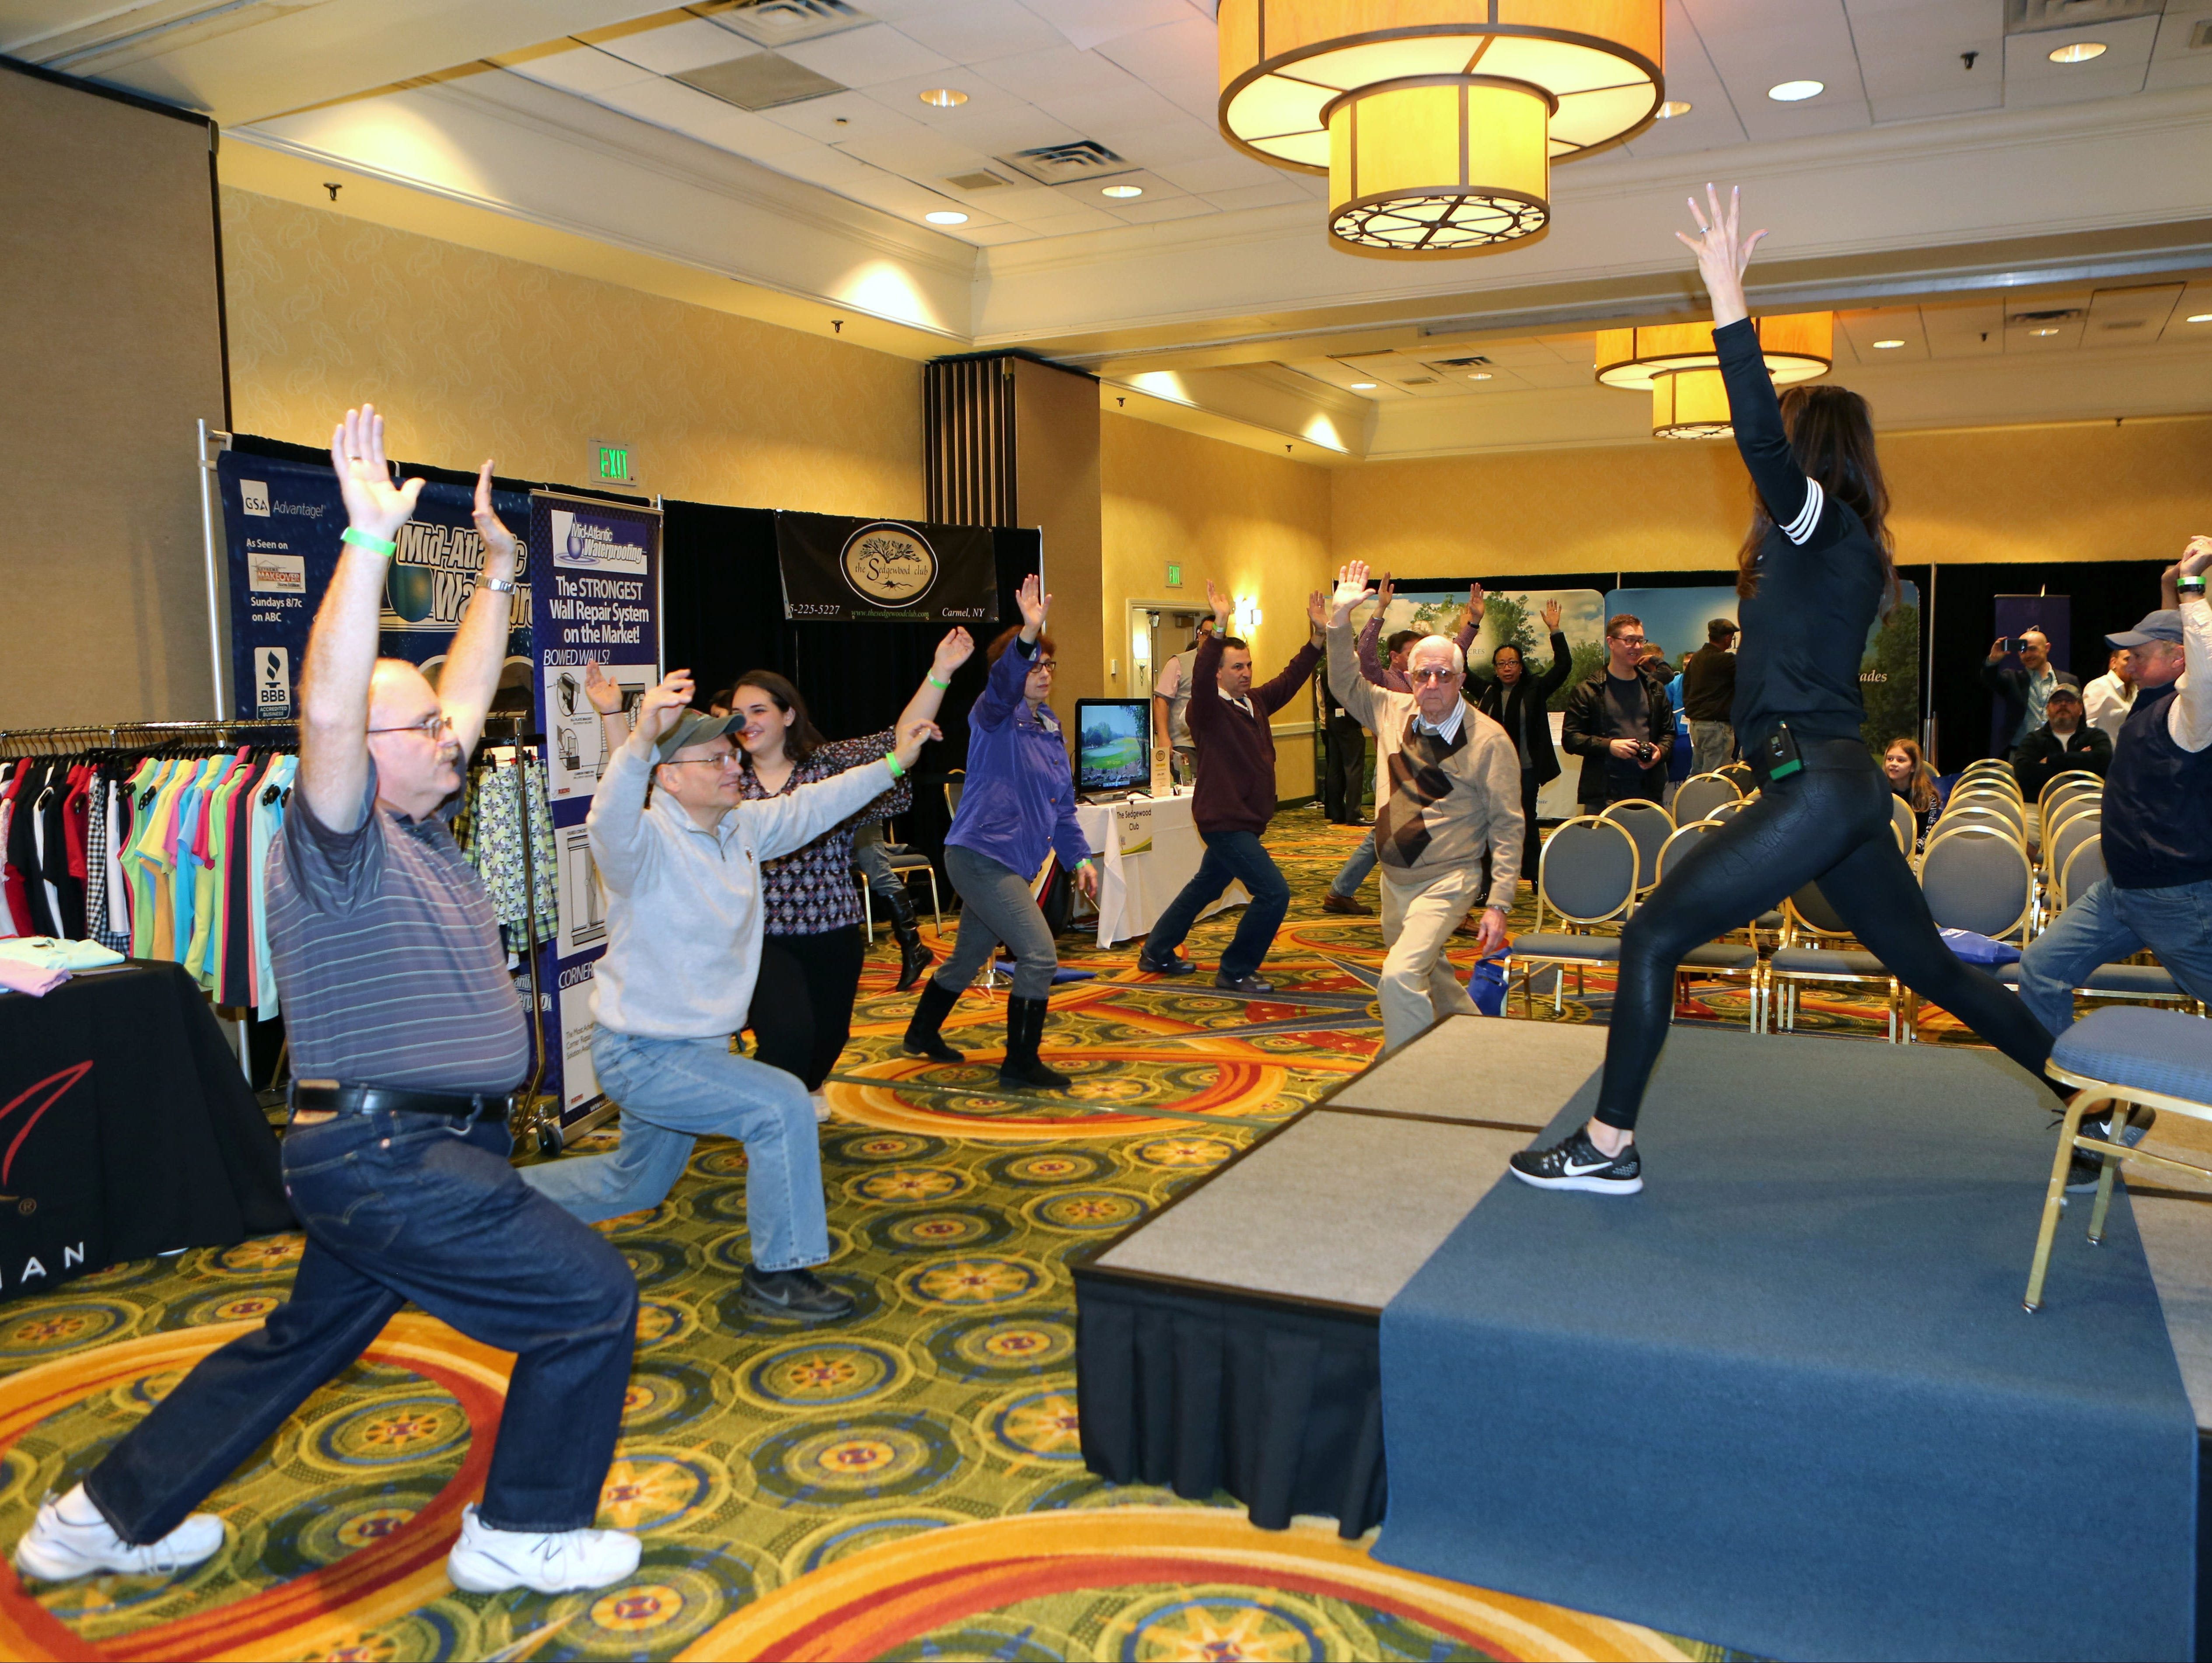 Yoga Instructor Karen Young puts the attendees through some moves at the lohud.com Golf Show at the Westchester Marriott in Tarrytown, March 12, 2016. The show continues Sunday, March 13, 2016 from 9:00 a.m. till 4:00 p.m.